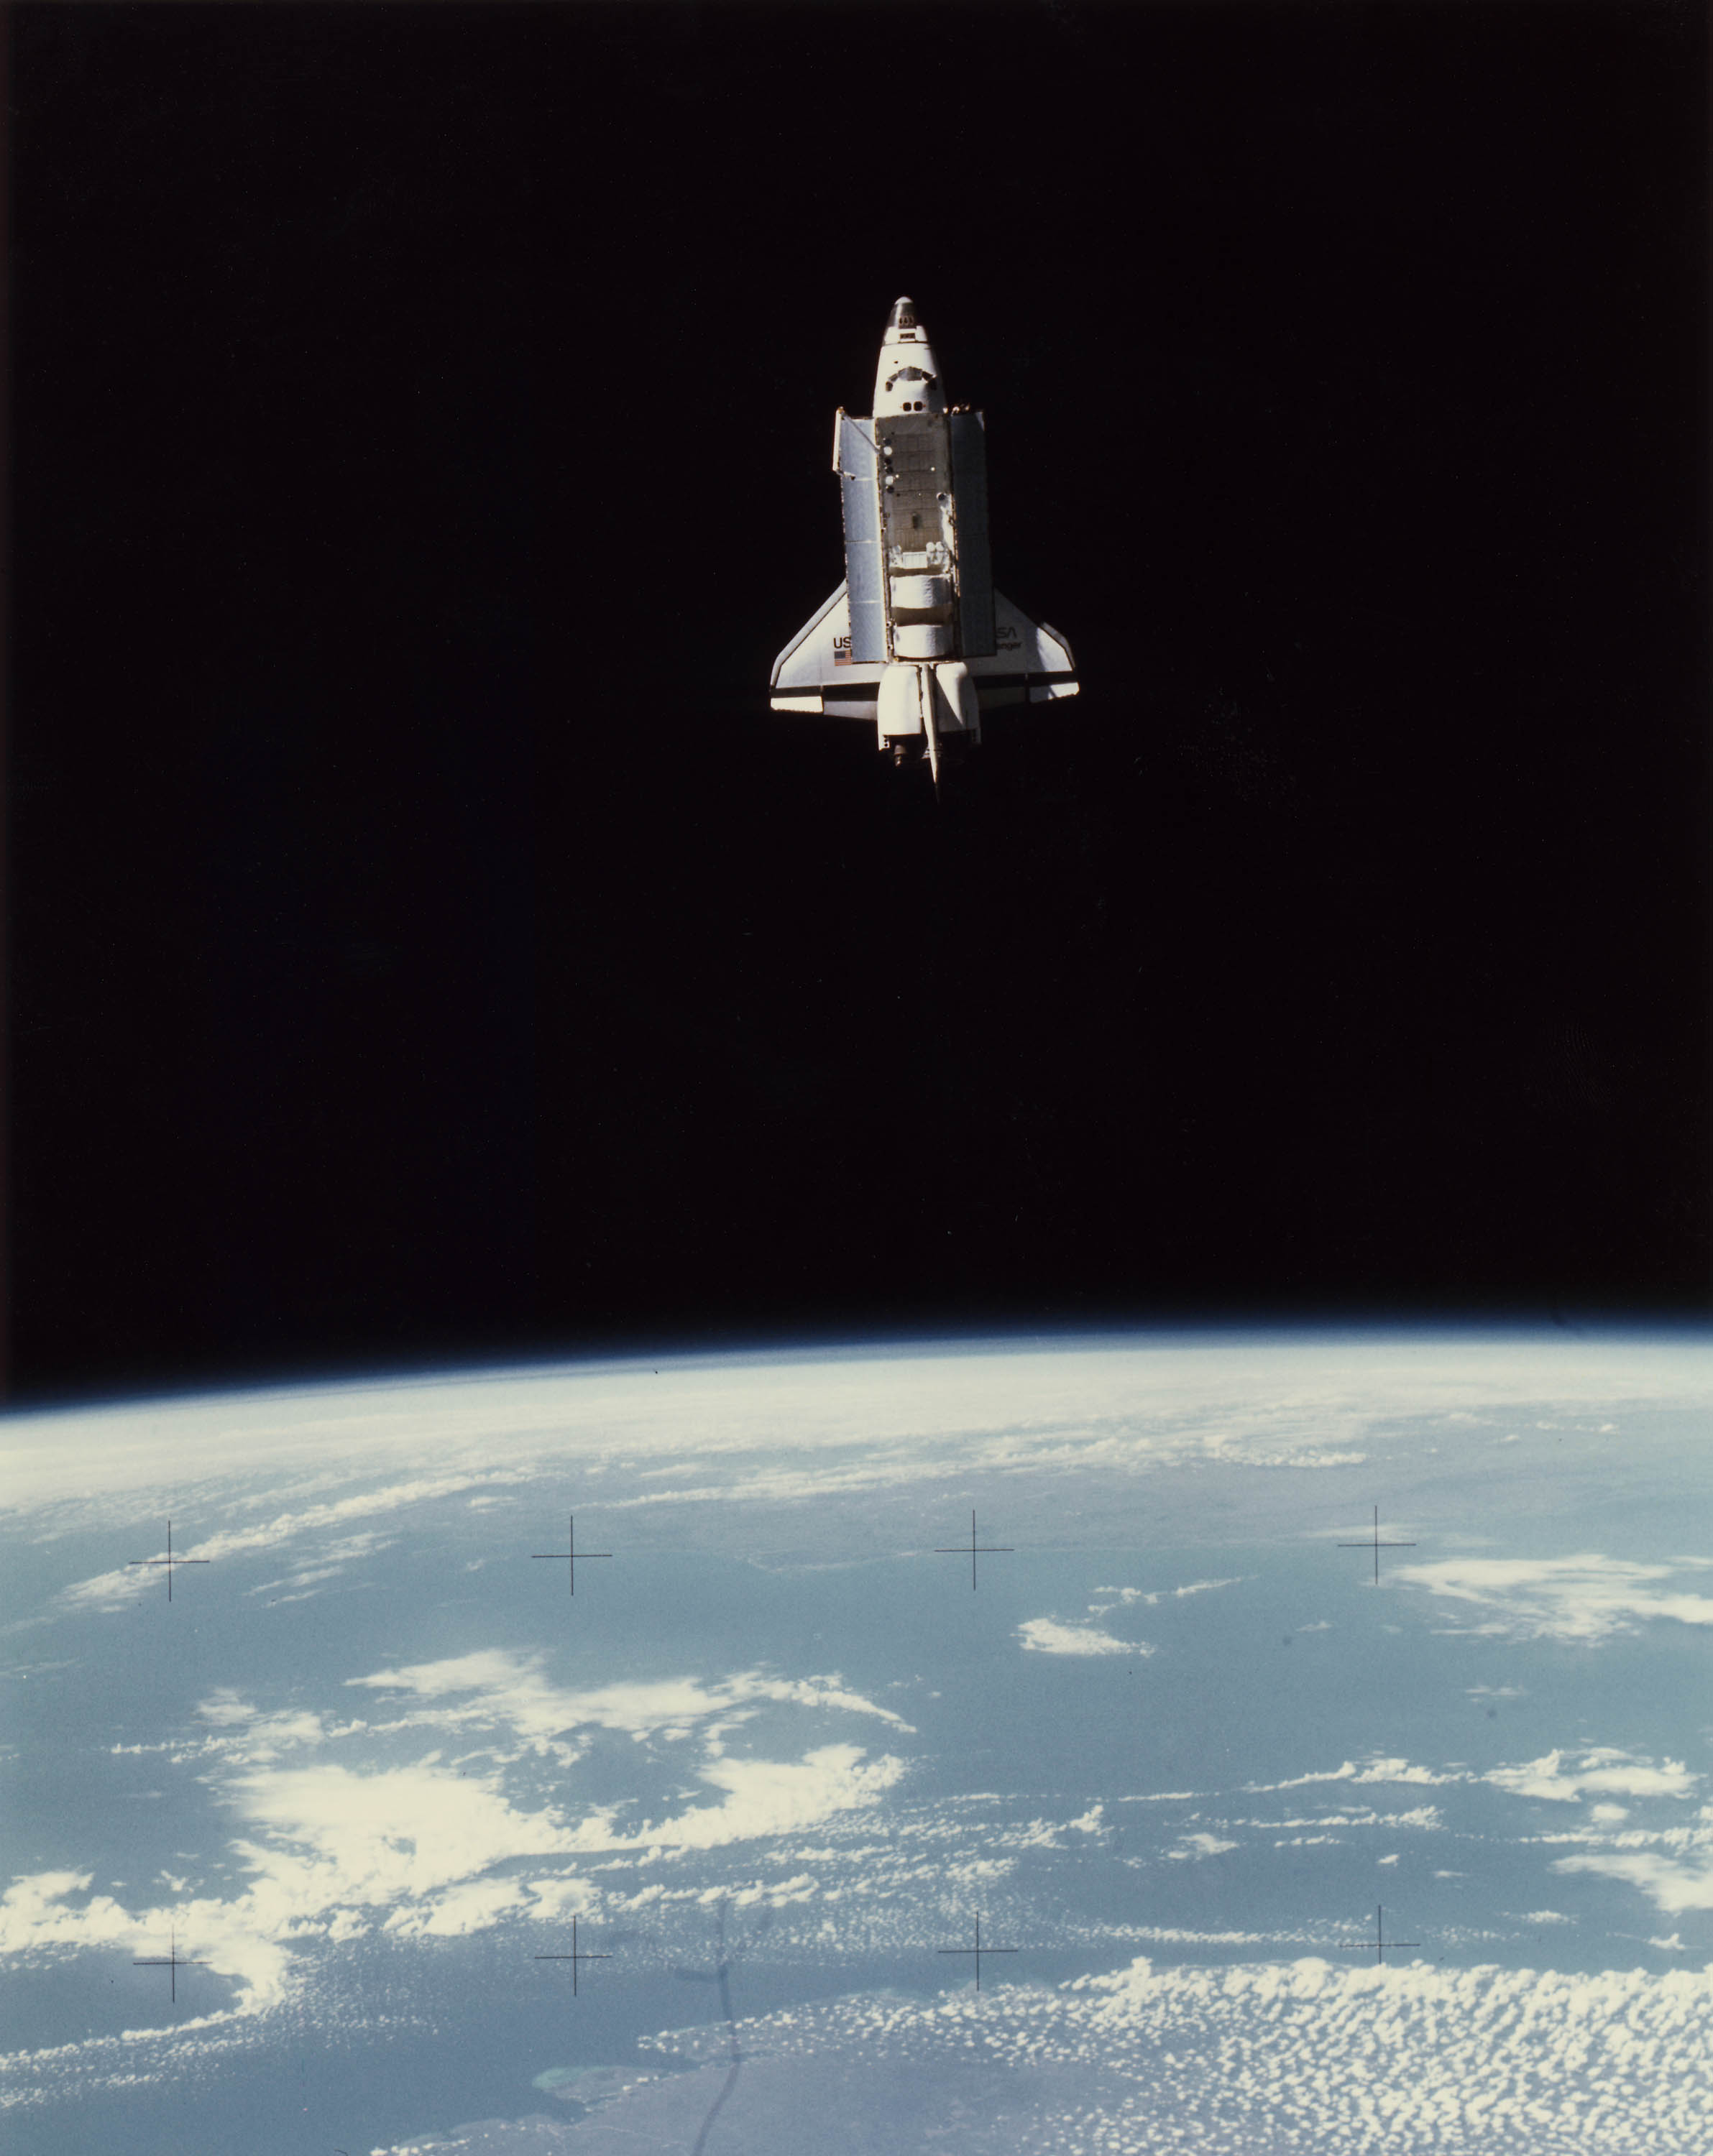 space shuttle challenger impact on america - photo #31